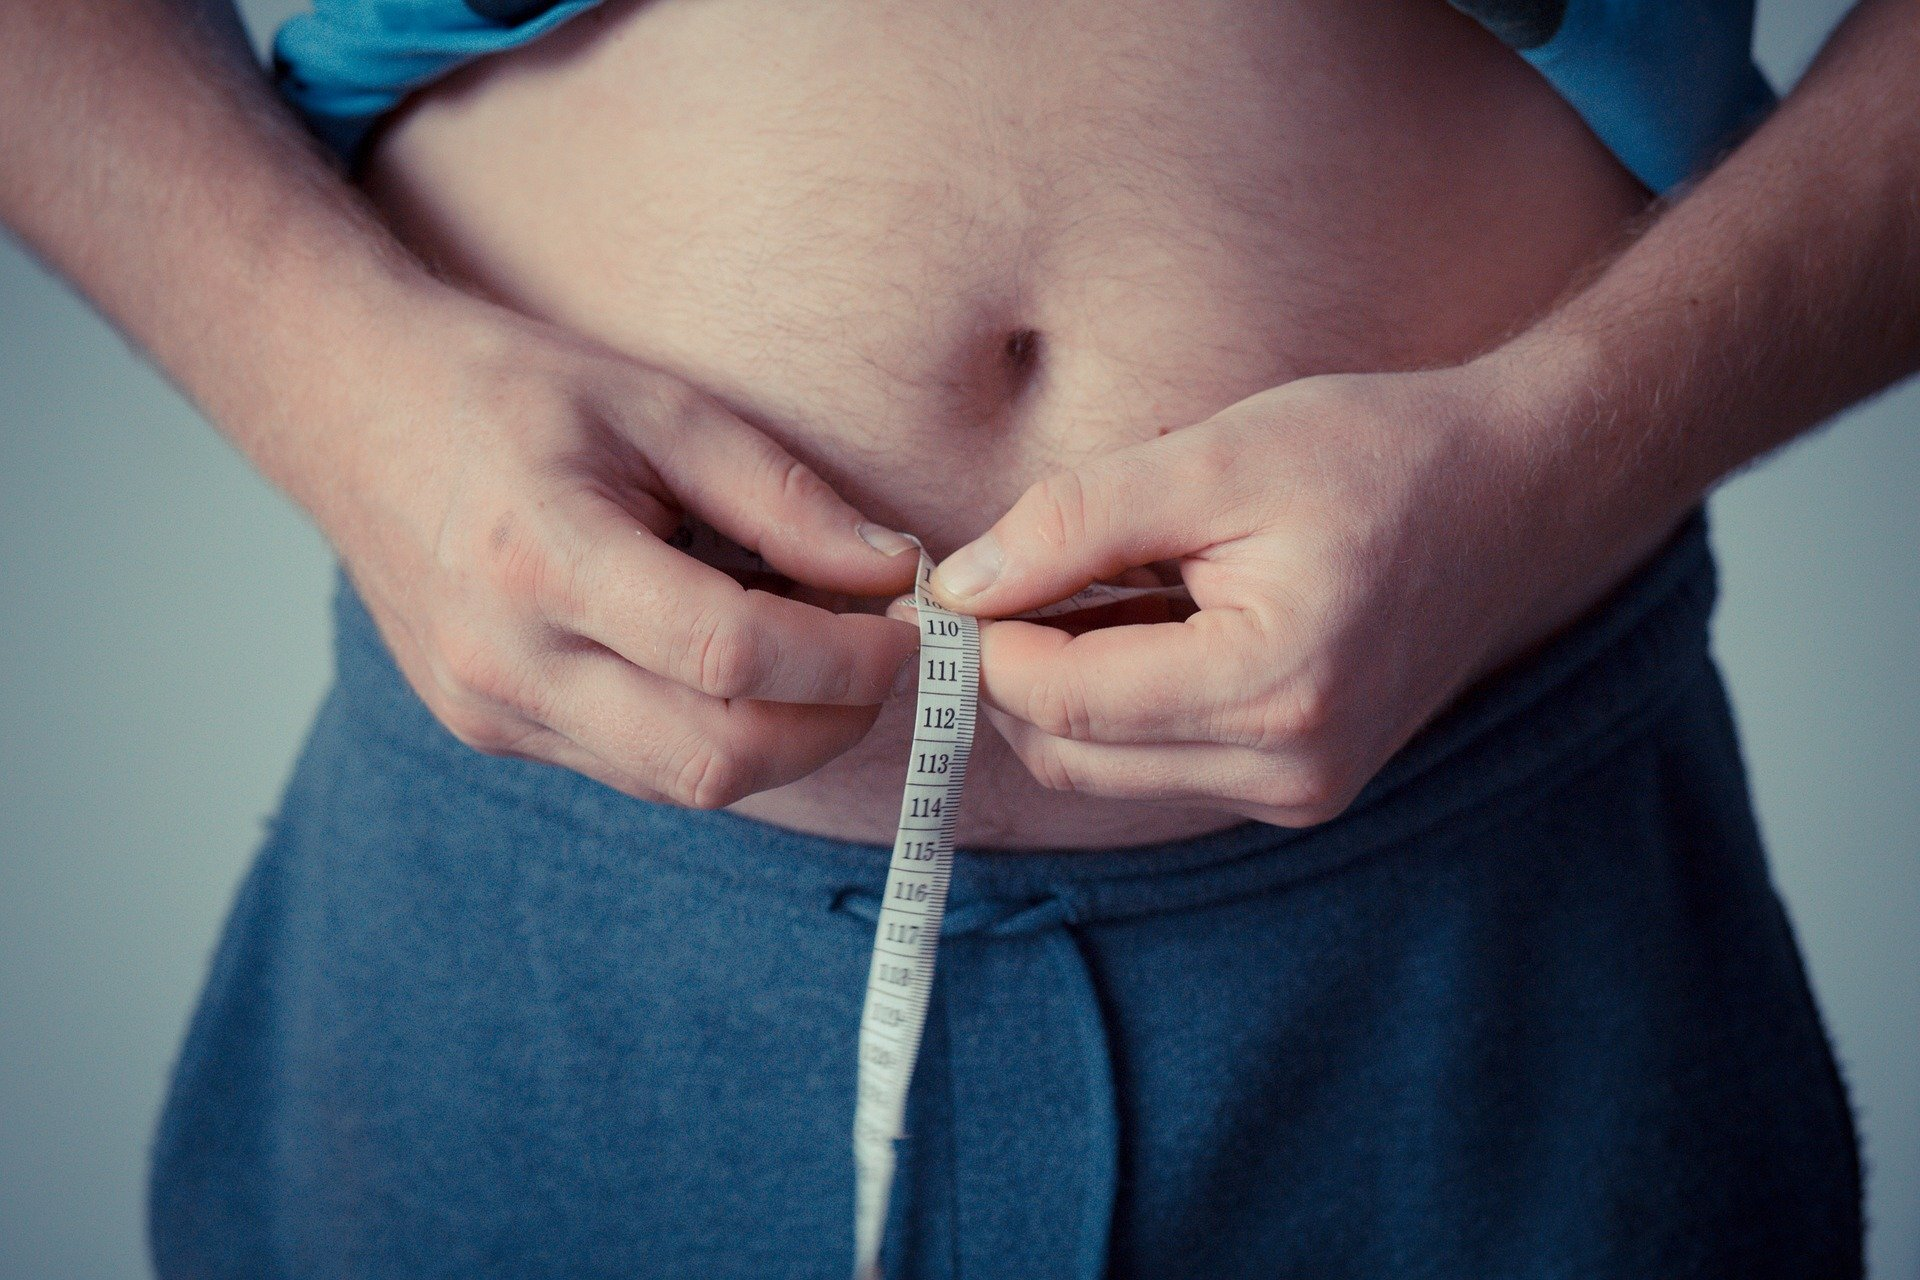 Overweight man holding measuring tape around belly